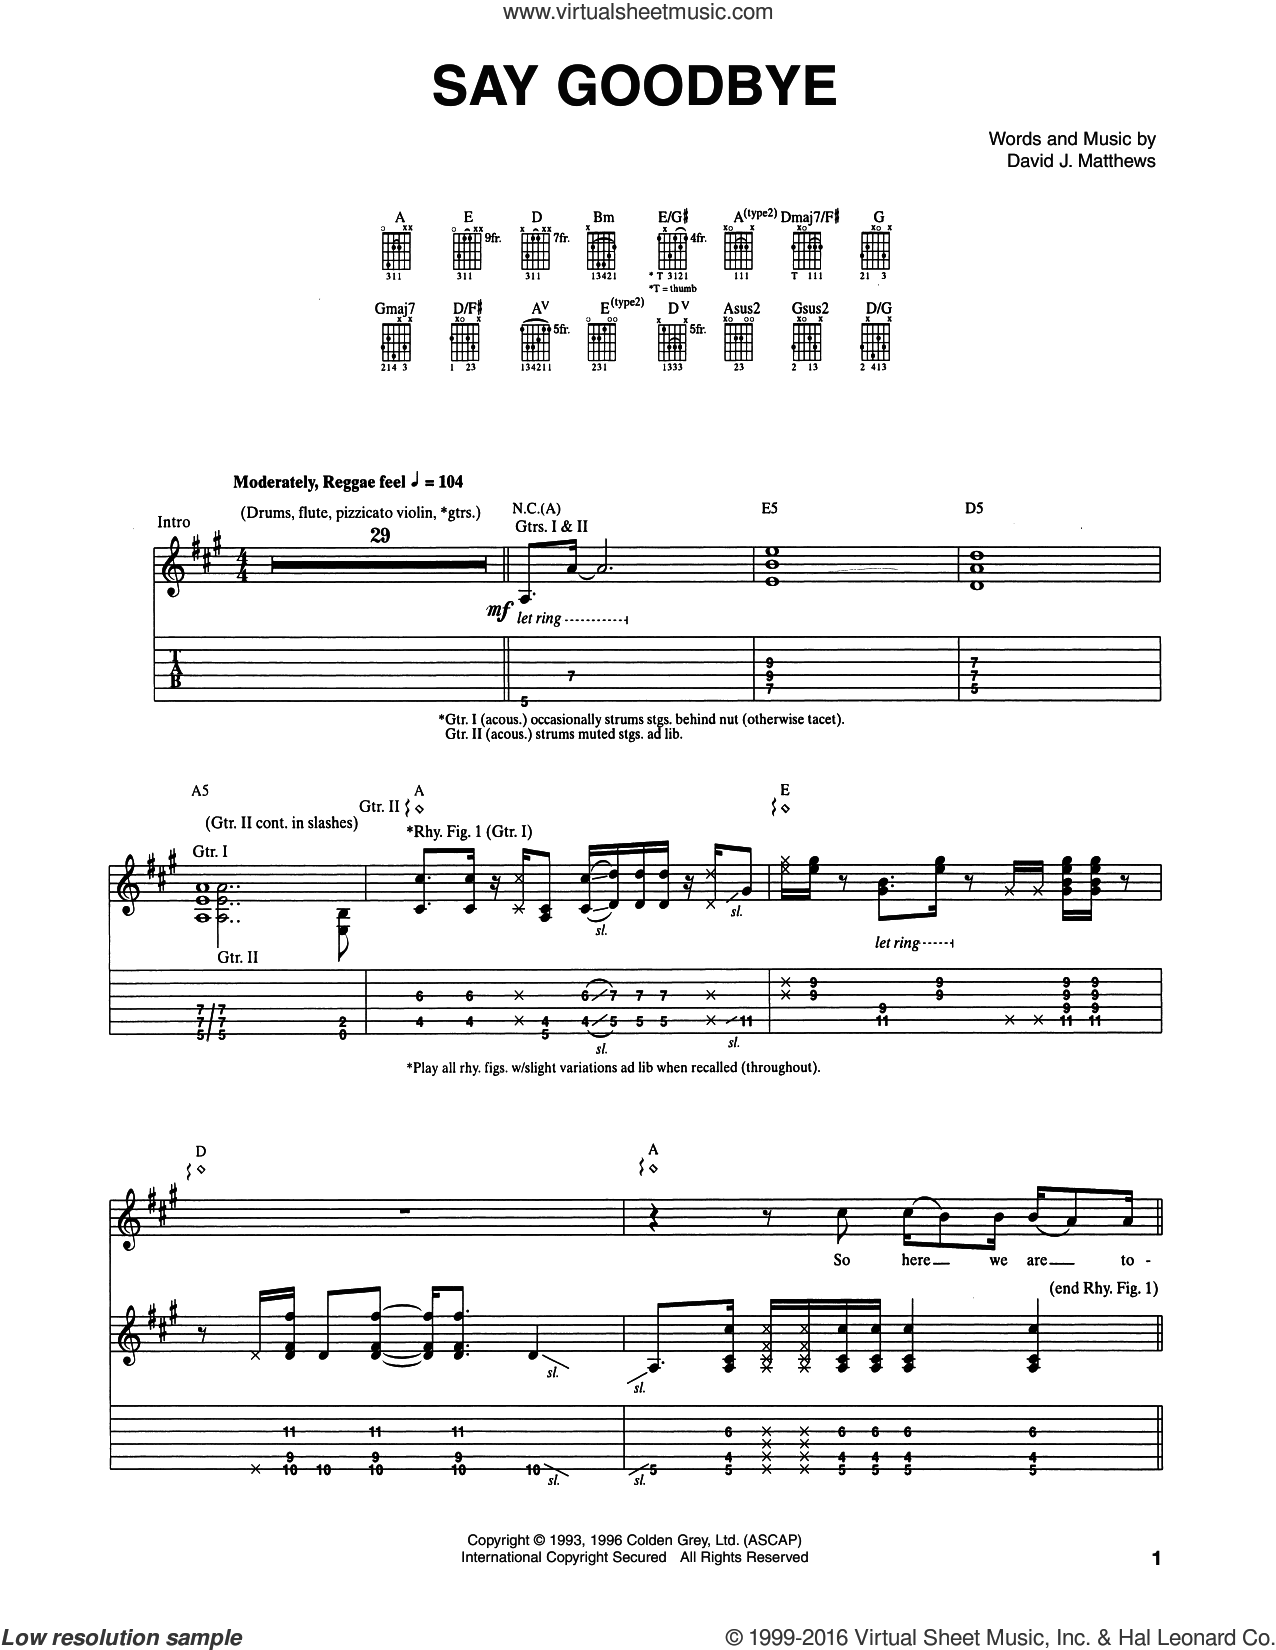 Say Goodbye sheet music for guitar (tablature) by Dave Matthews Band. Score Image Preview.